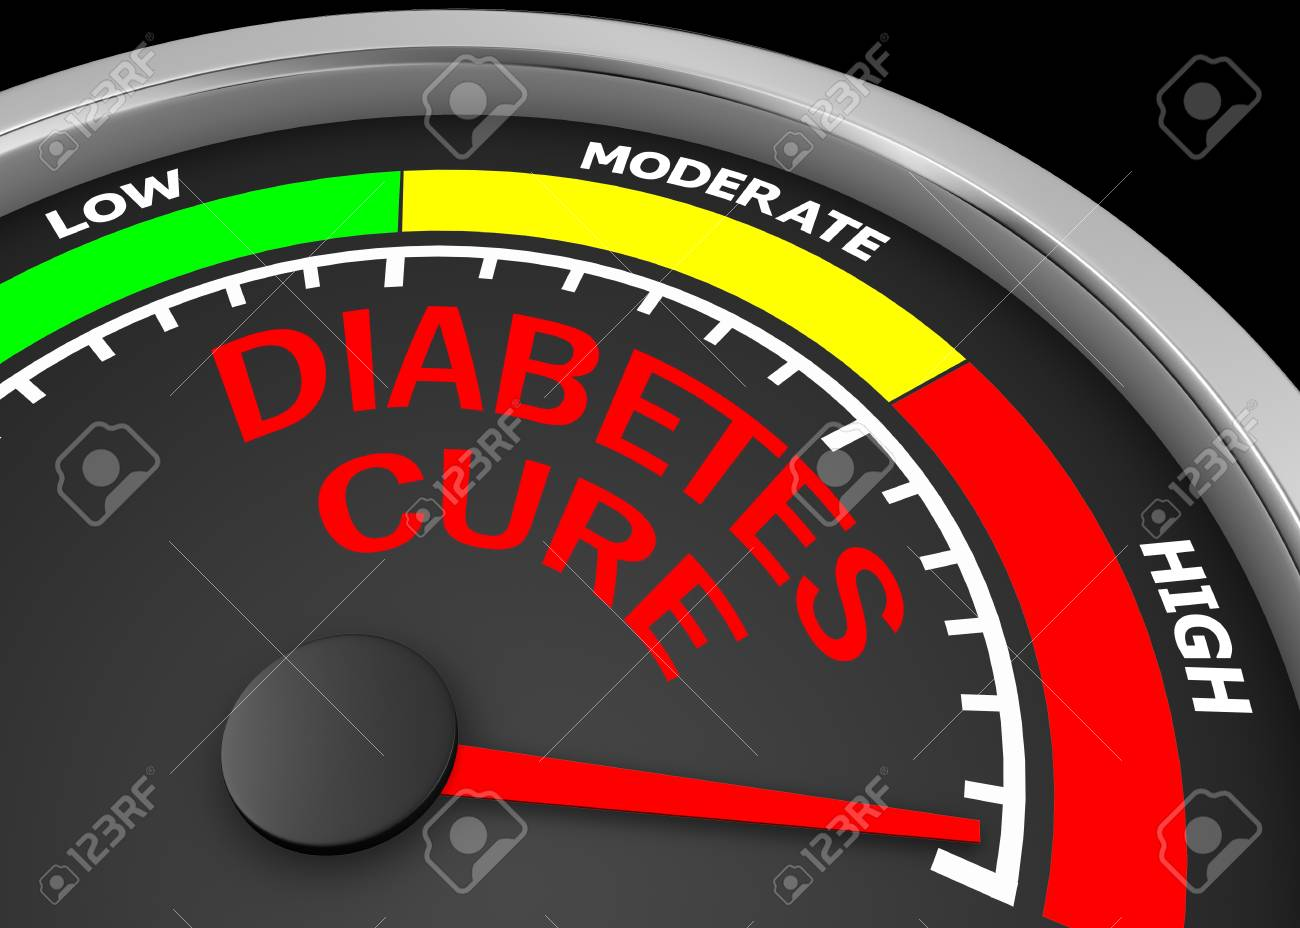 3dfd diabetes cure